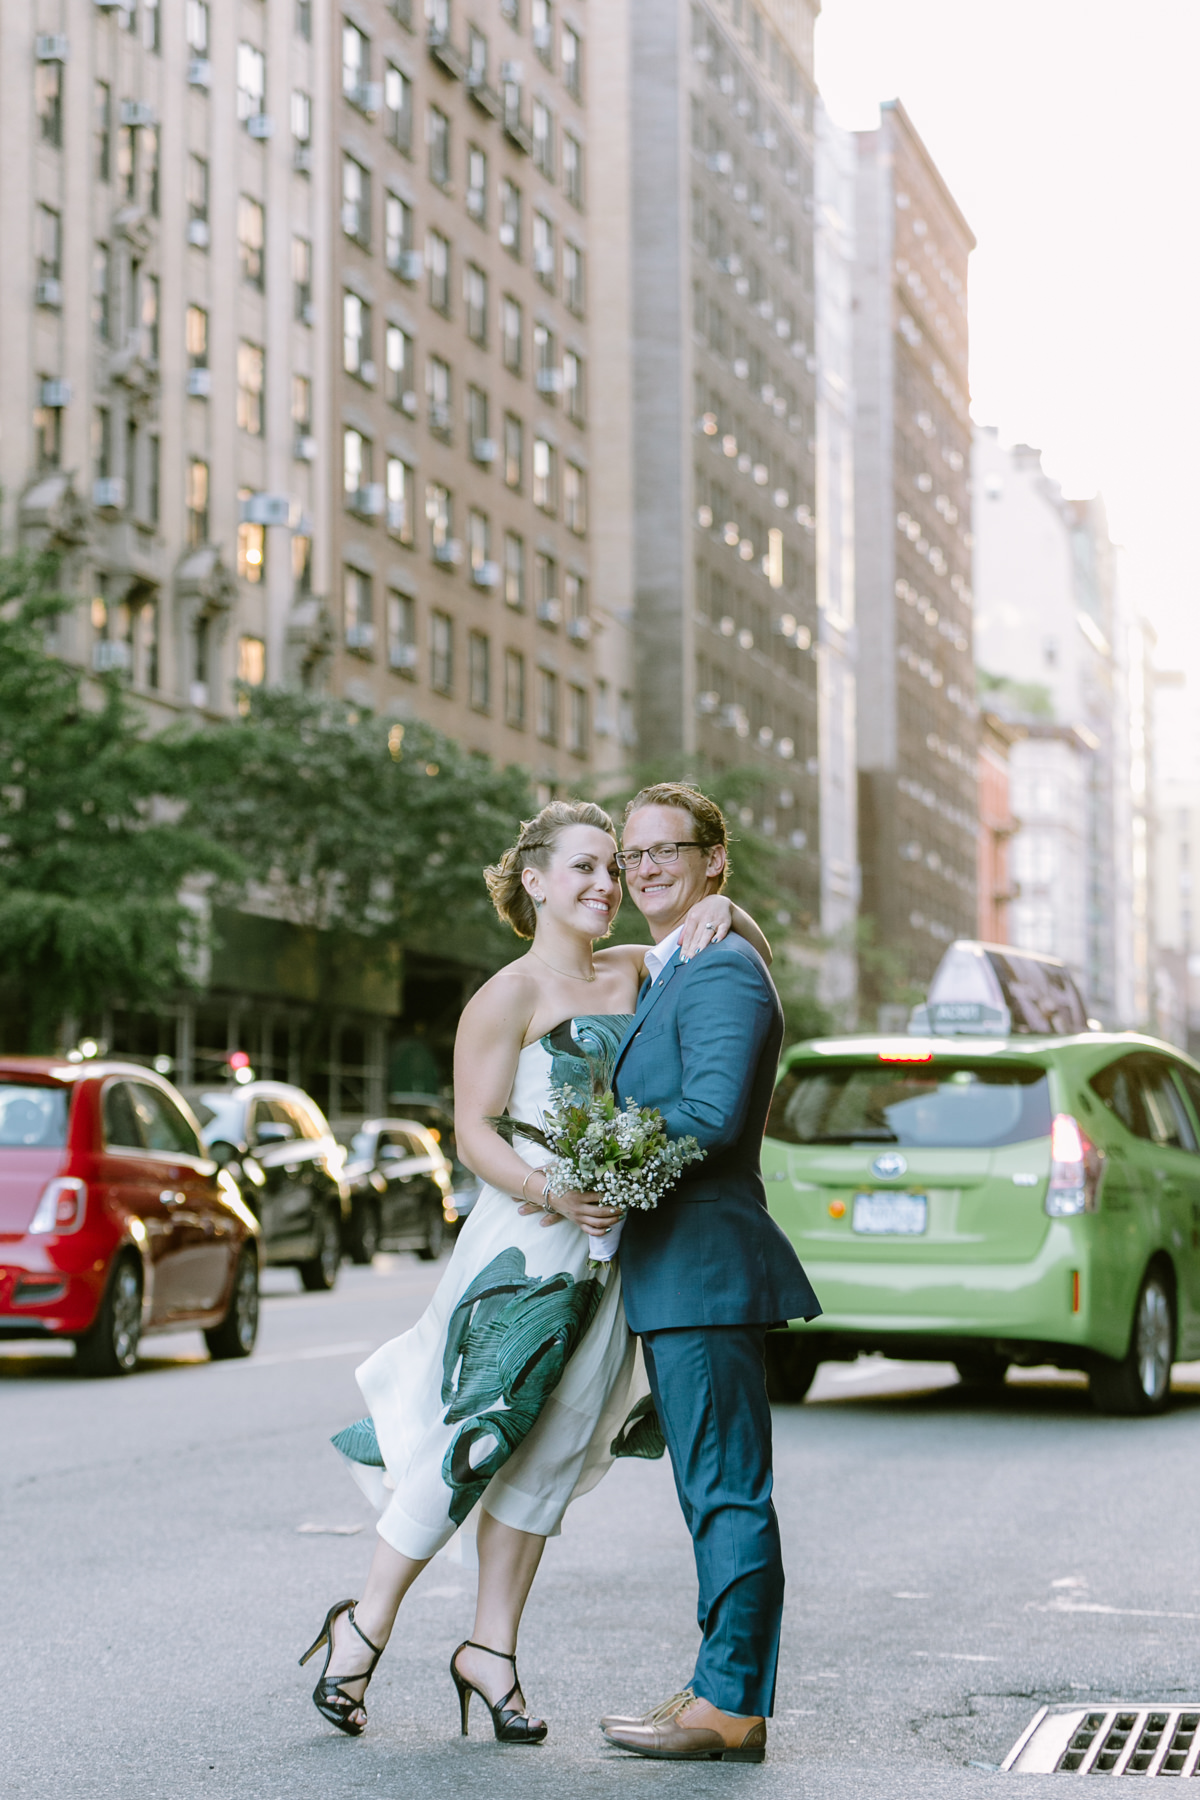 NYC-engagement-photography-by-Tanya-Isaeva-91.jpg